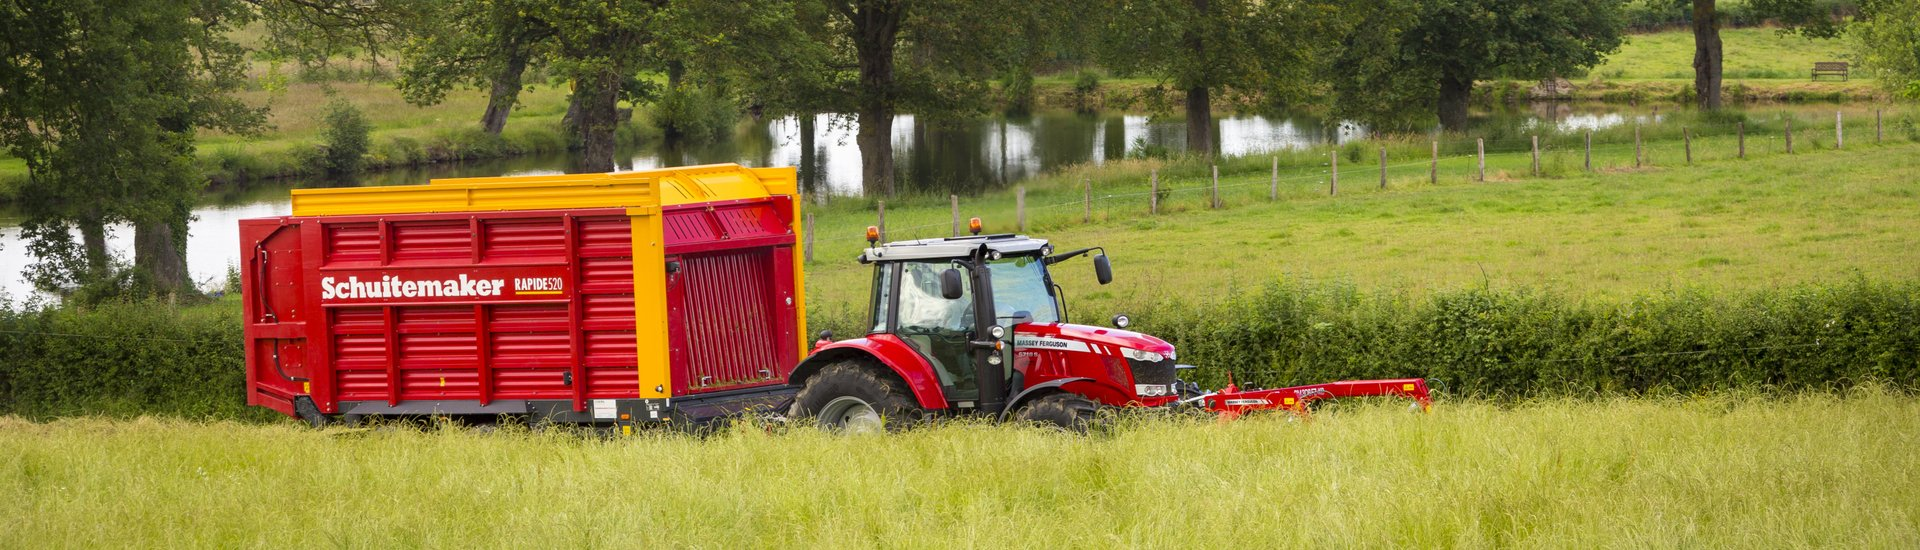 Schuitemaker loaderwagon and silage wagon